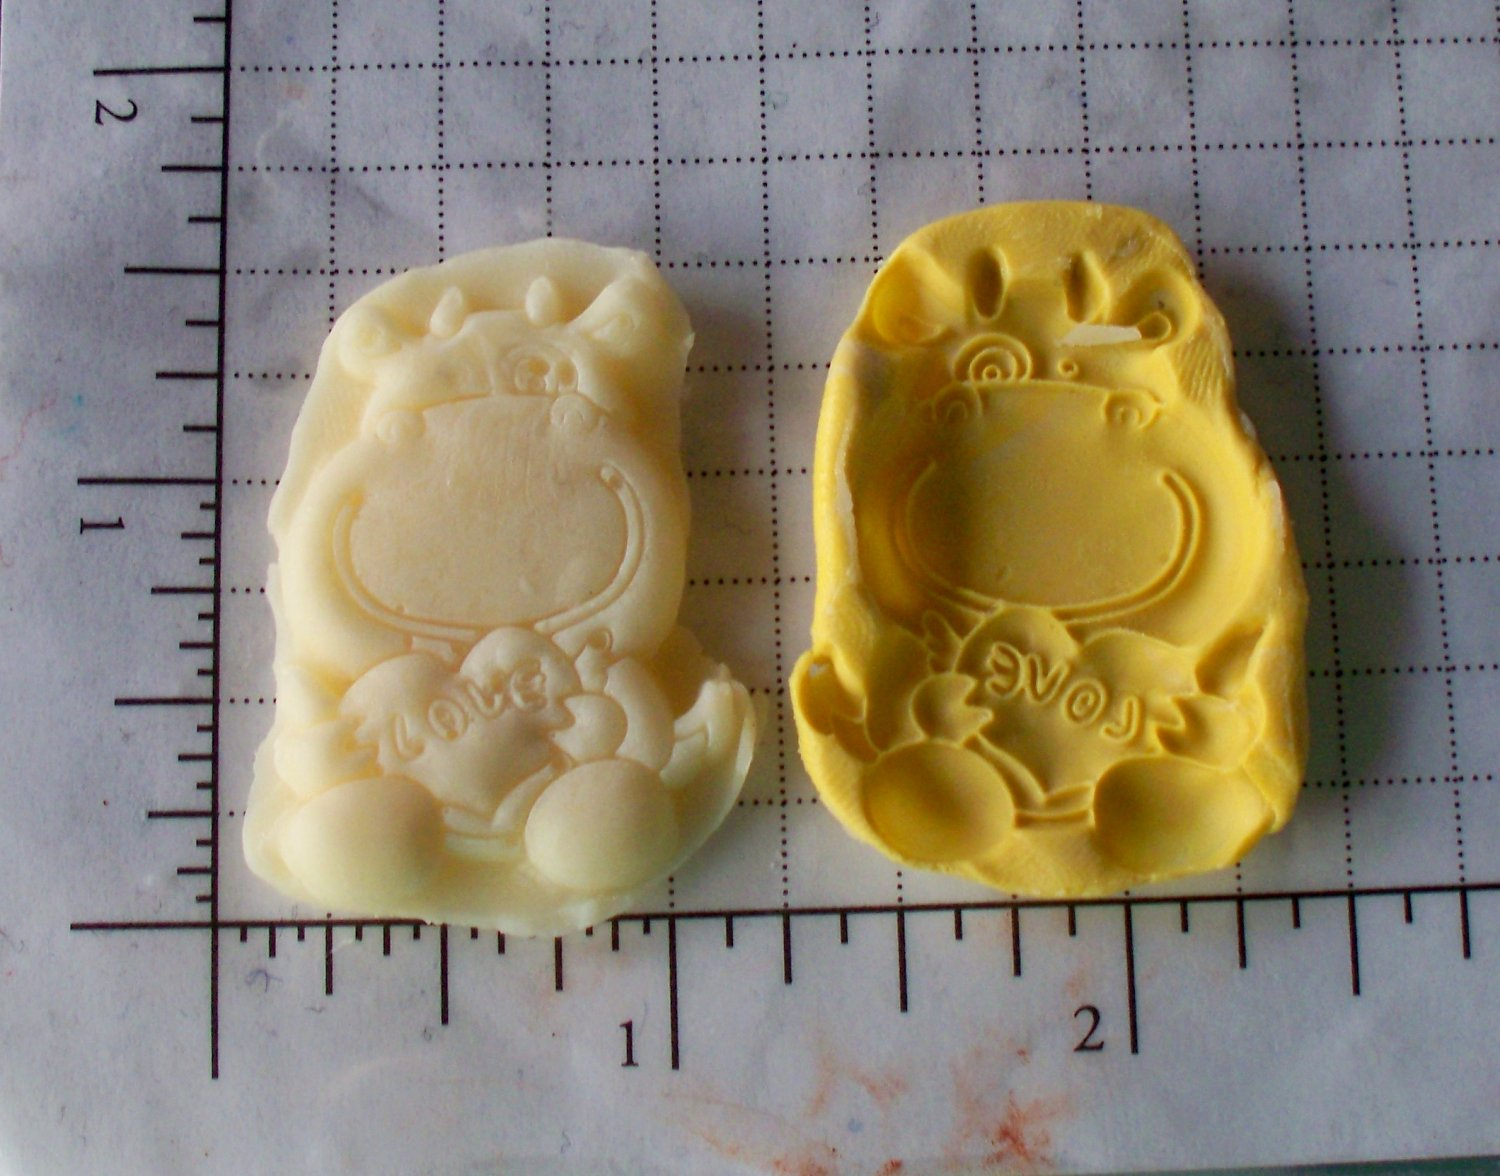 Cow hugging heart -Cake Candy Cookies Crafts-  Silicone Mold